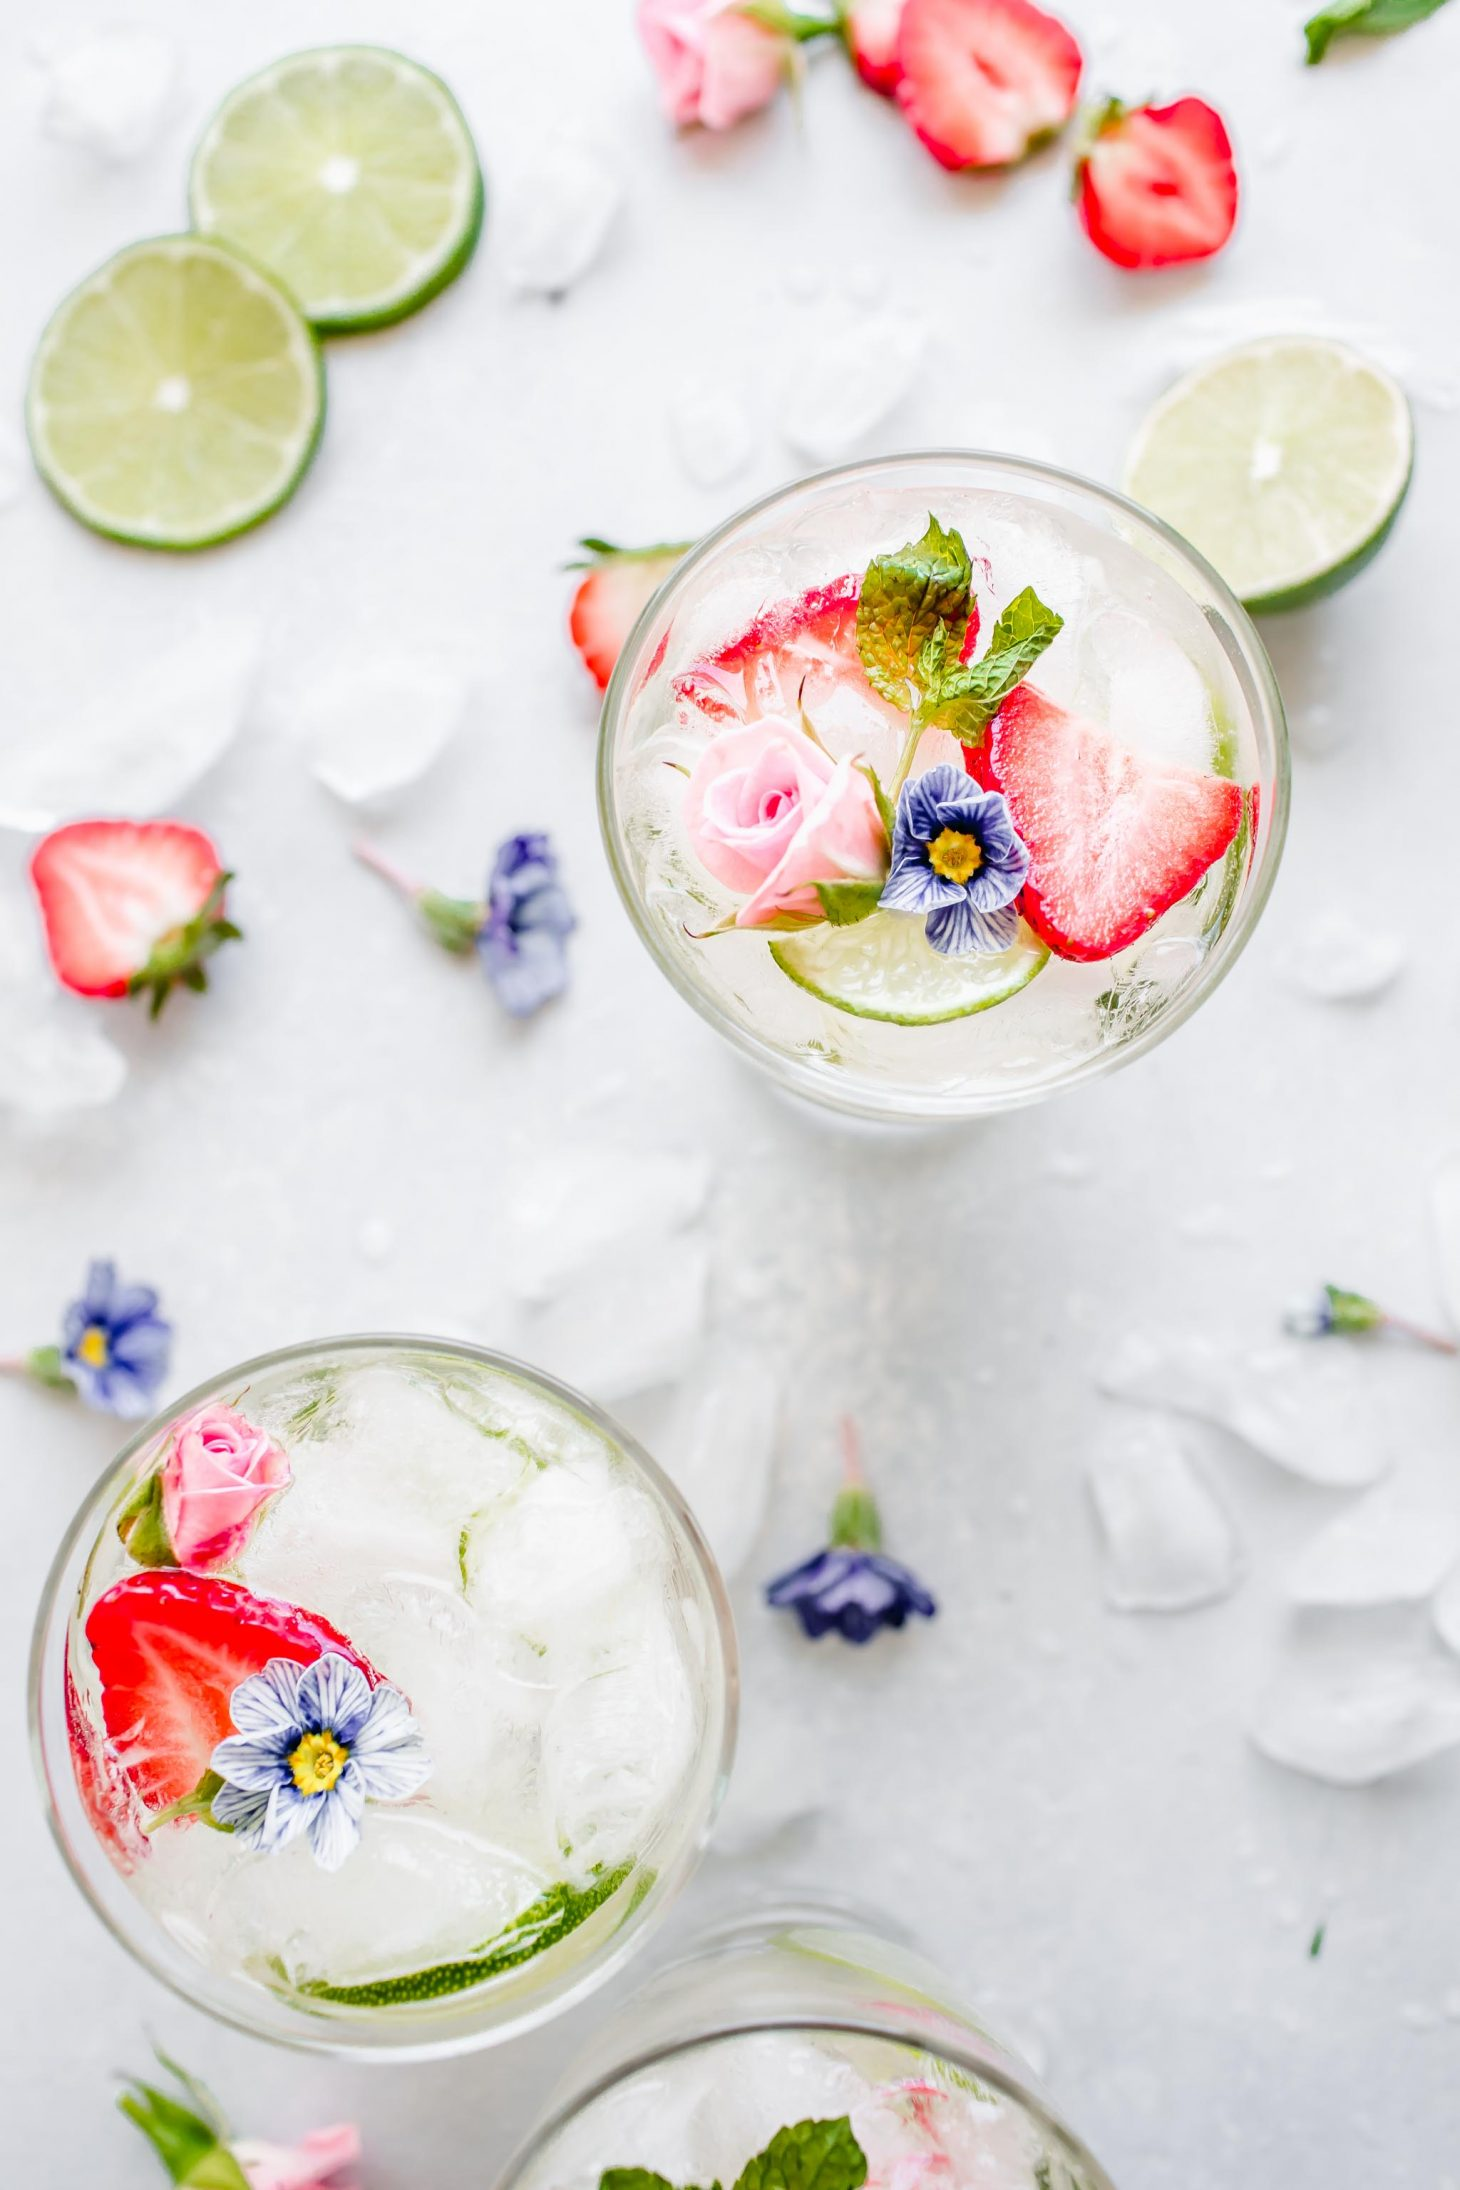 Overhead shot of three glasses of white wine sangria topped with edible flowers.